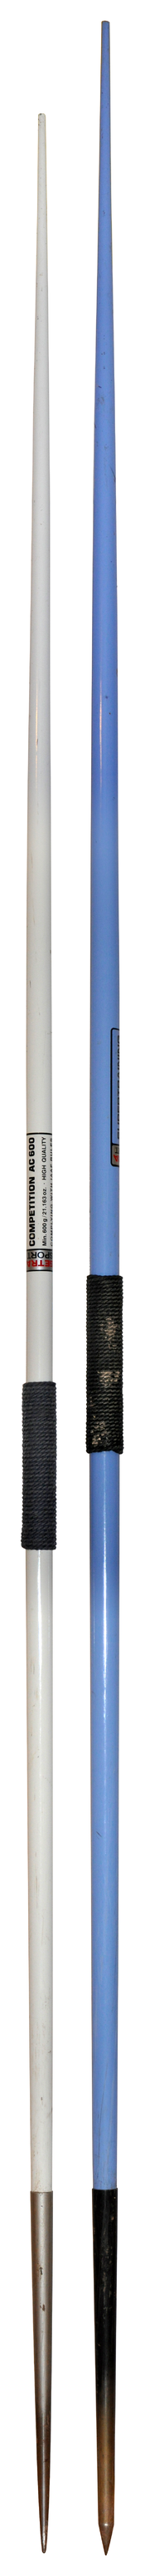 Comparison between a javelin for women (600g) and one for men (800g)